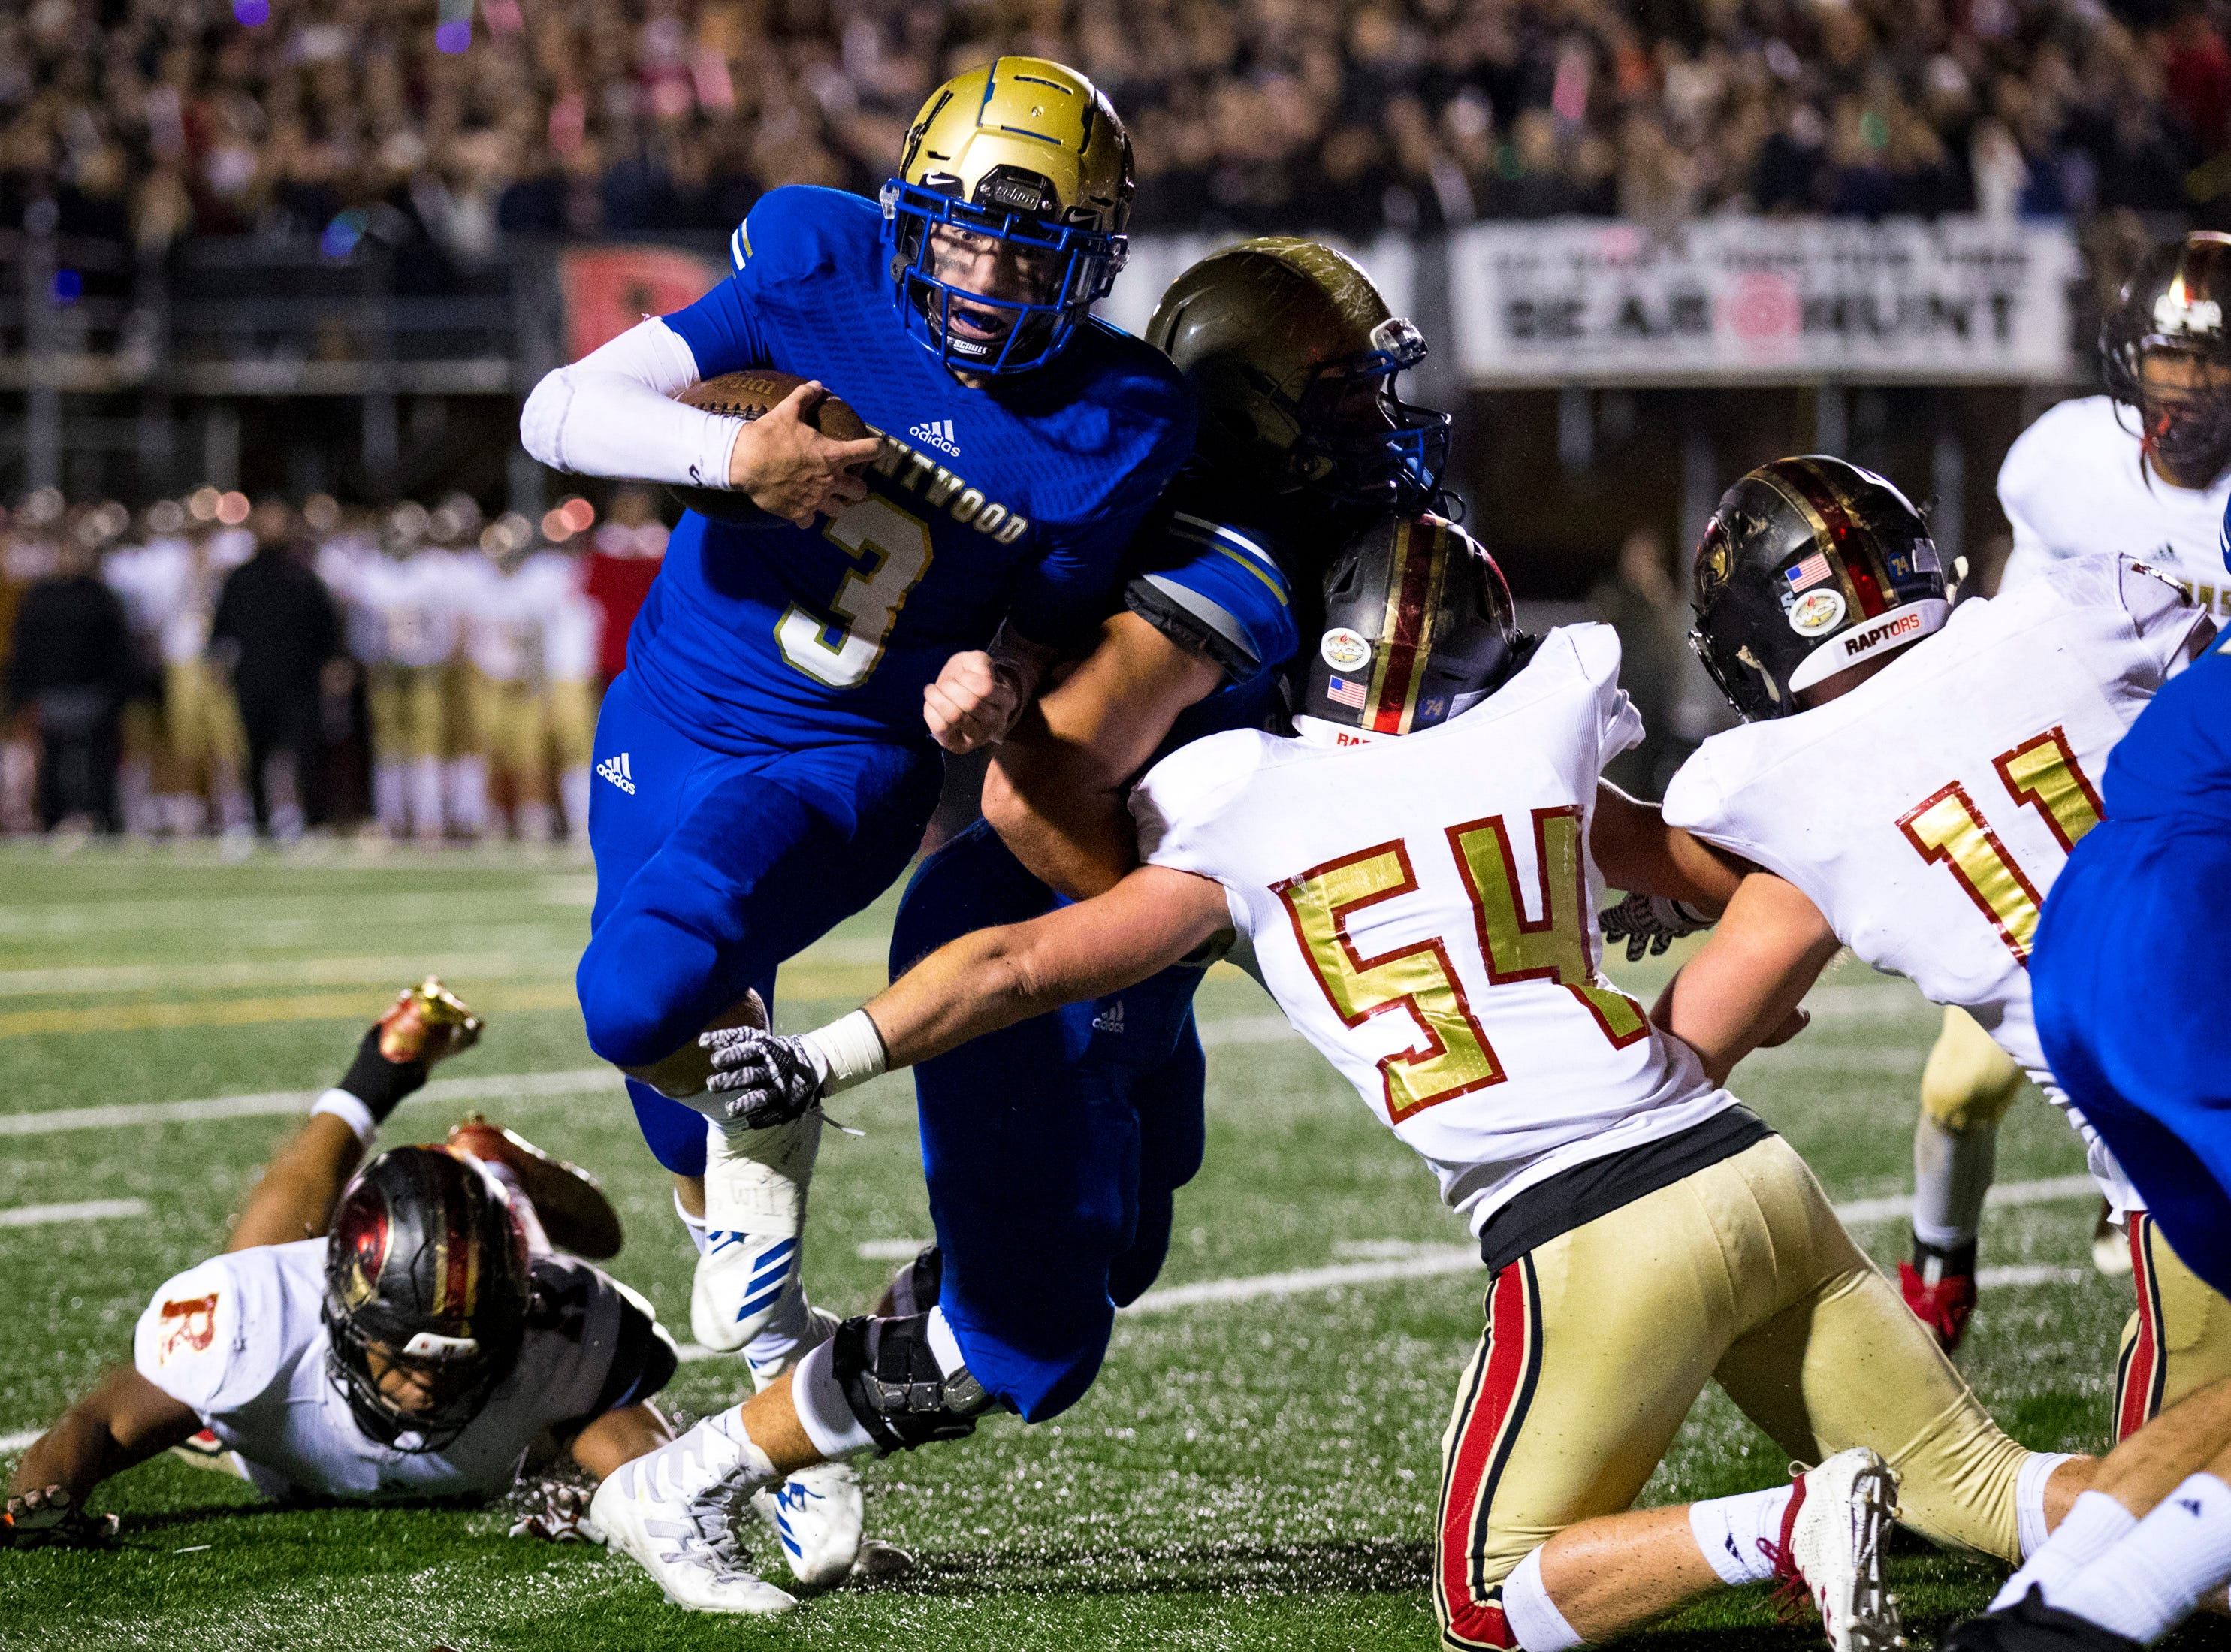 Brentwood's Cade Granzow (3) runs in a touchdown during Brentwood's game against Ravenwood at Brentwood High School in Brentwood on Friday, Nov. 16, 2018.